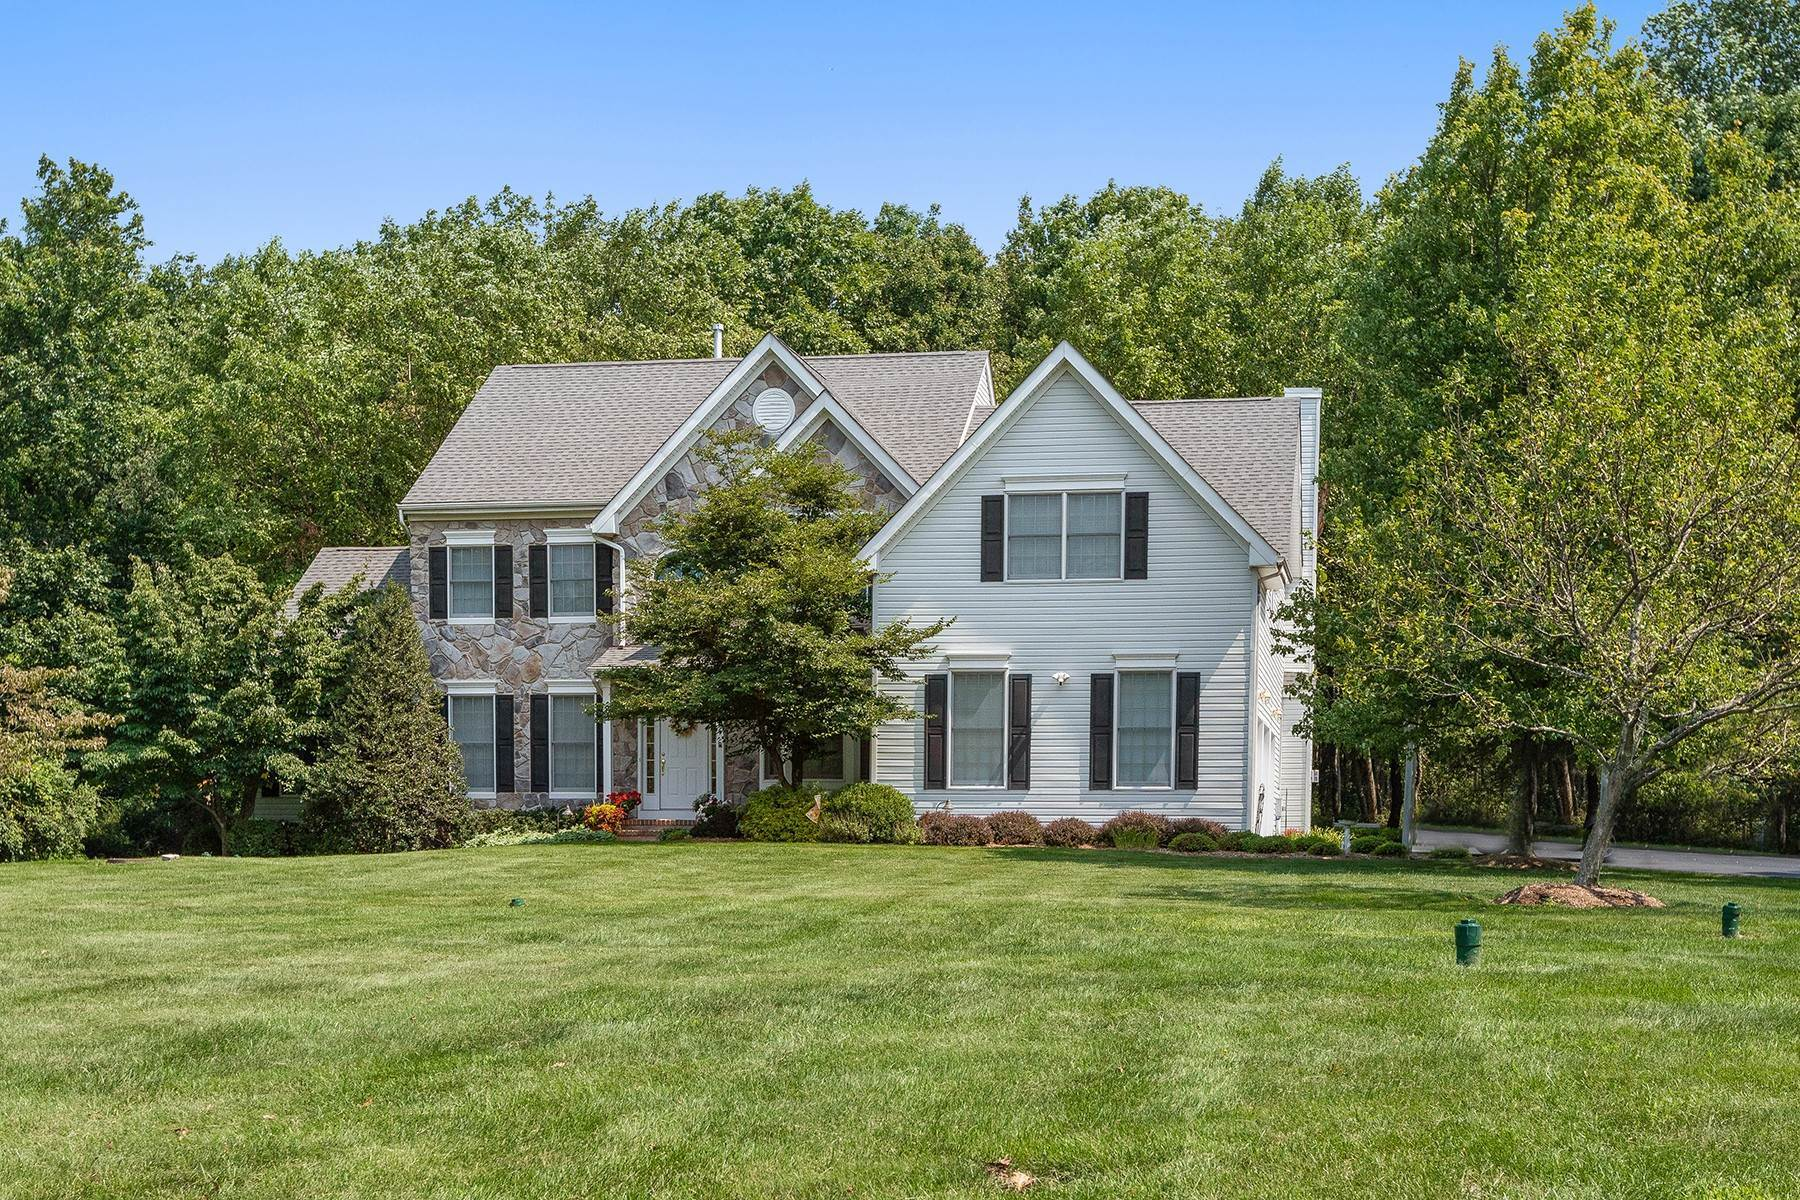 Single Family Homes for Sale at Meticulous Grandview Estates Home 11 Harvest Lane Long Valley, New Jersey 07853 United States